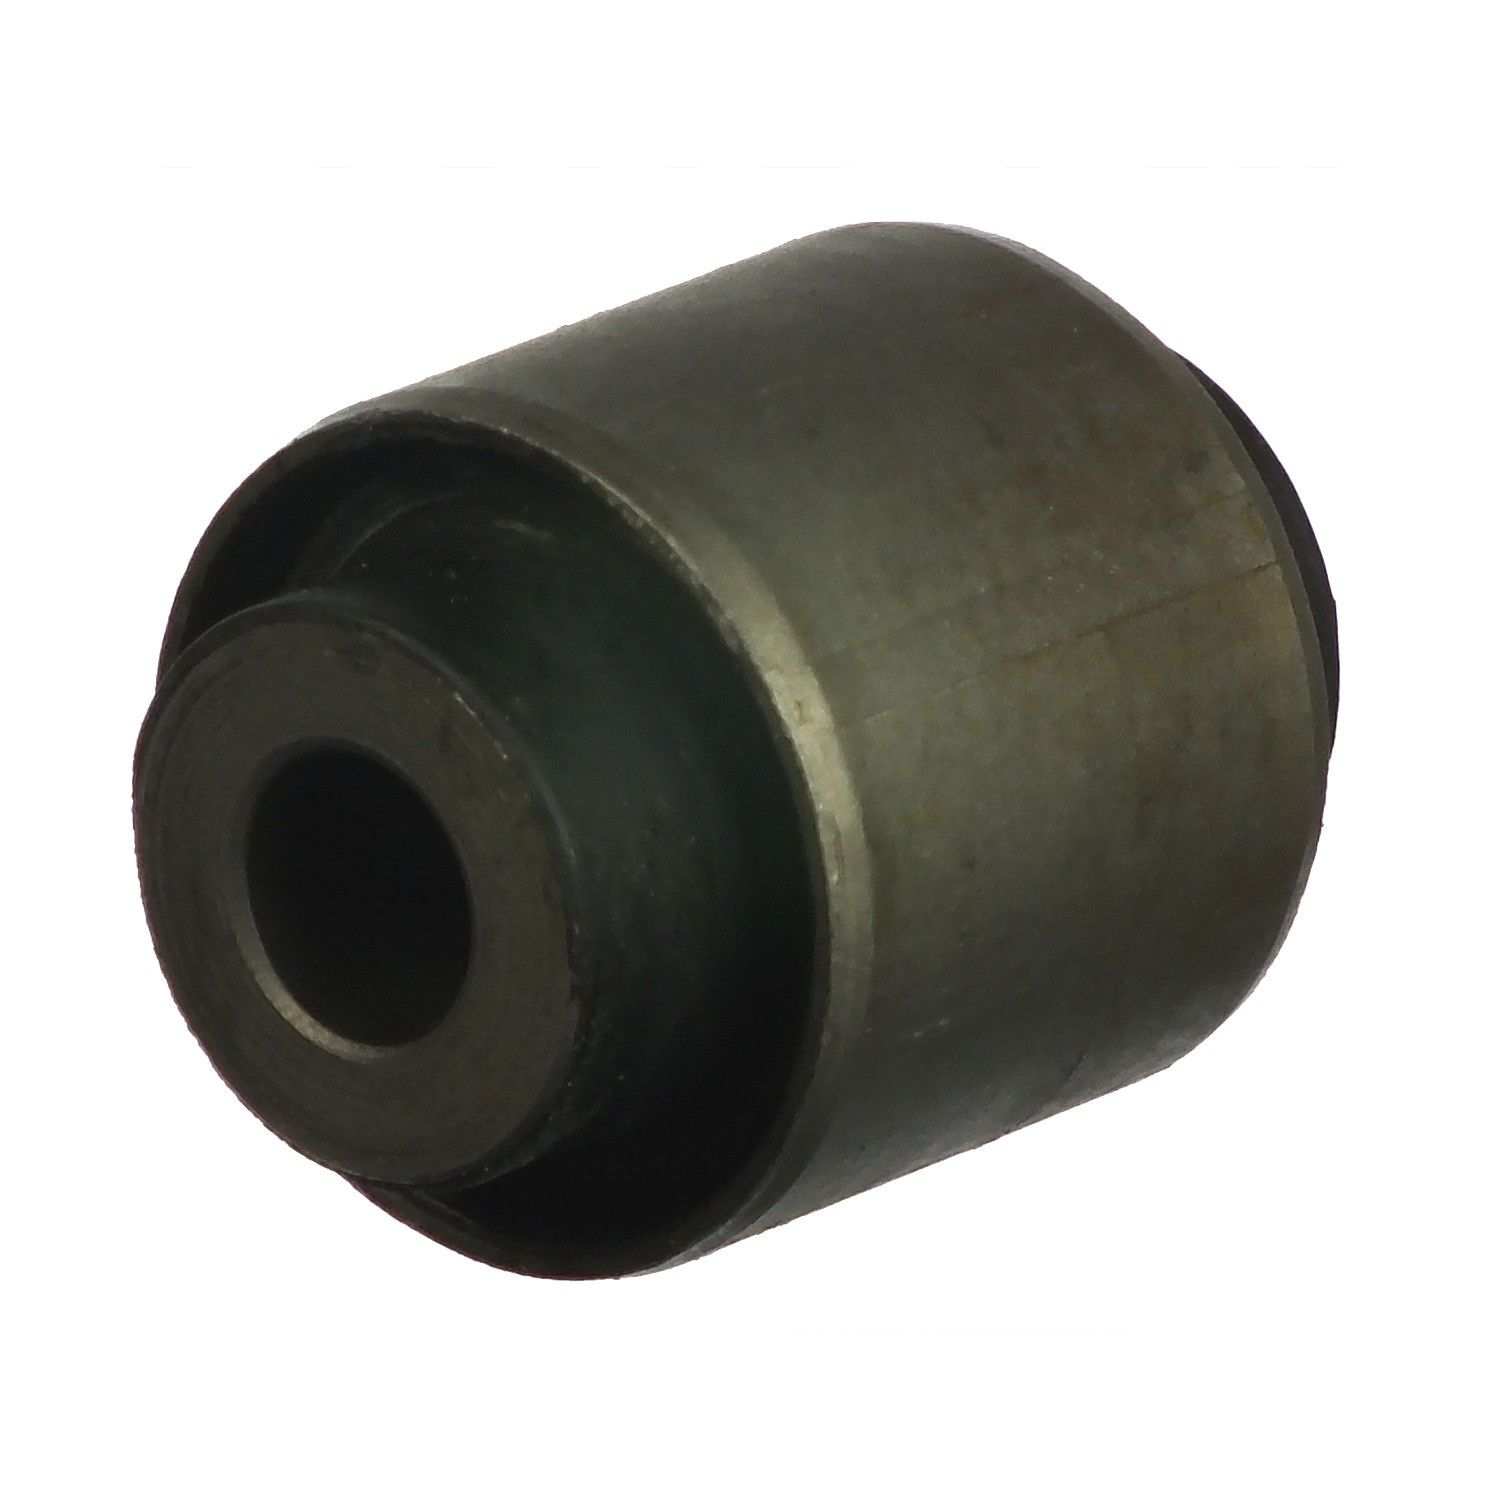 Delphi TD1220W Suspension Control Arm Bushing